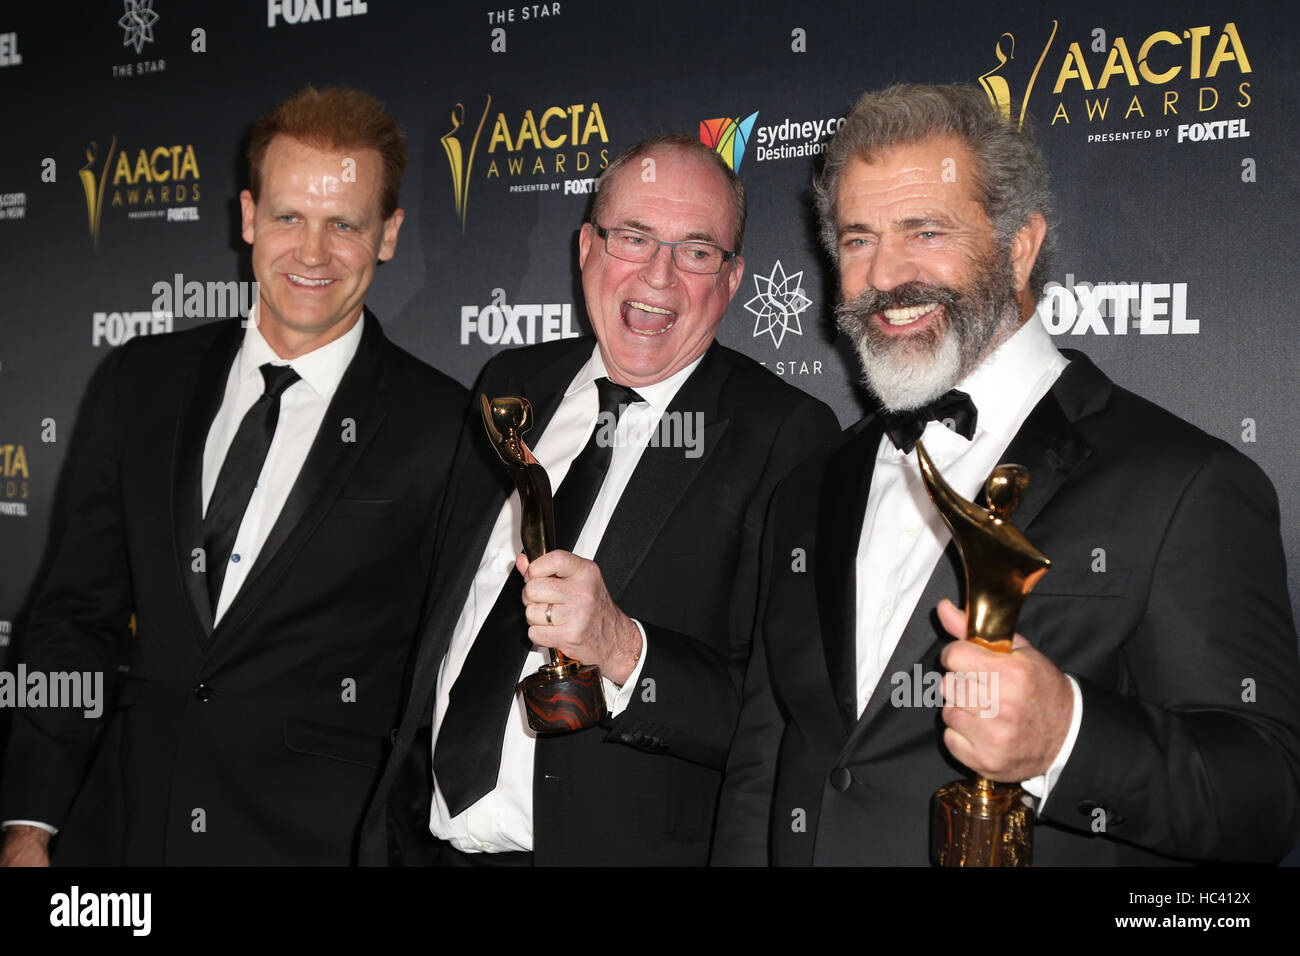 Sydney, Australia. 7 December 2016. Pictured, L-R: Paul Currie, Bruce Davey and Mel Gibson from the movie Hacksaw - Stock Image